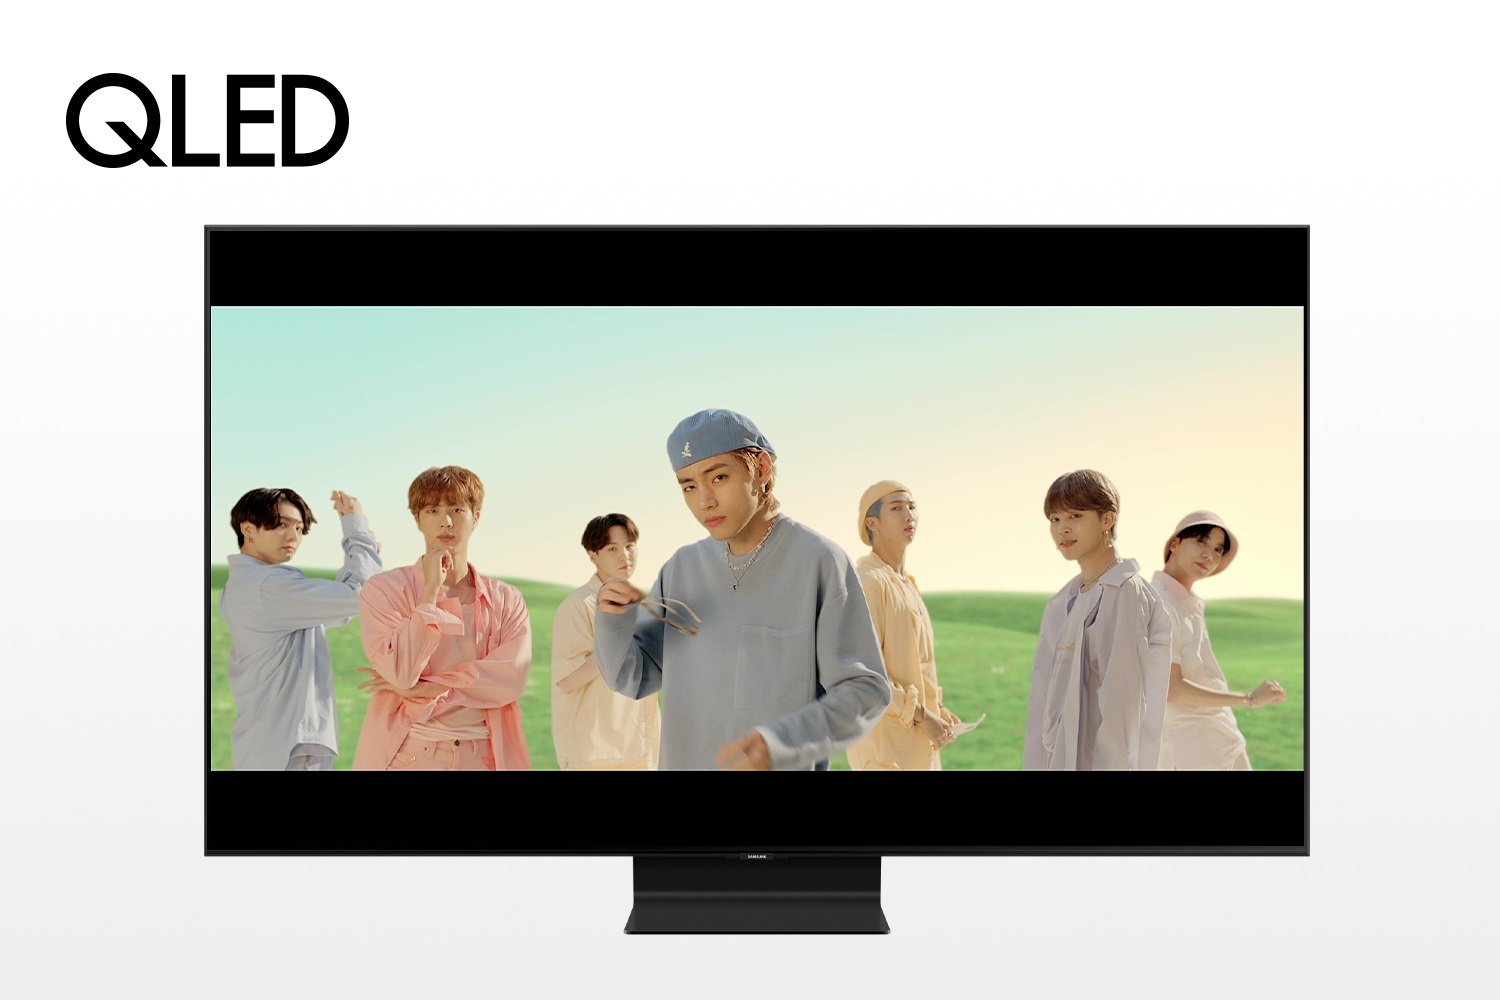 Samsung 4K QLED TV Playing BTS Dynamic Music Video Retail Stores